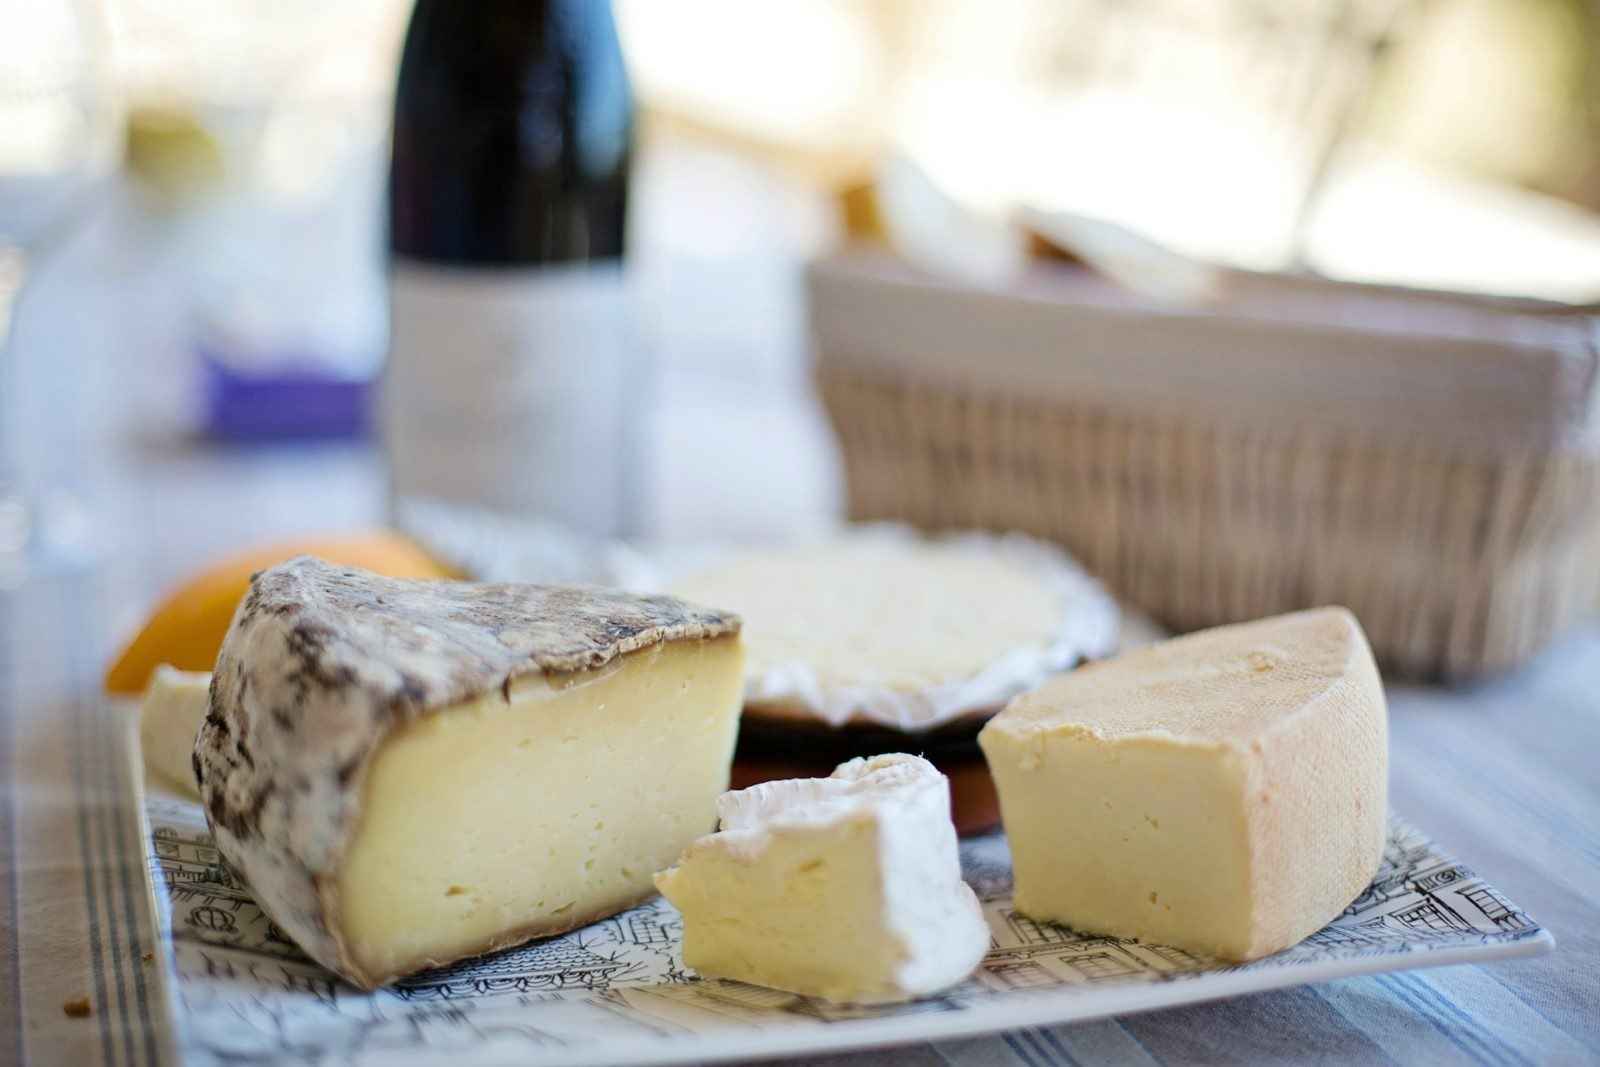 It may be delicious but dairy products such as cheese cause eczema flare-ups for many people.